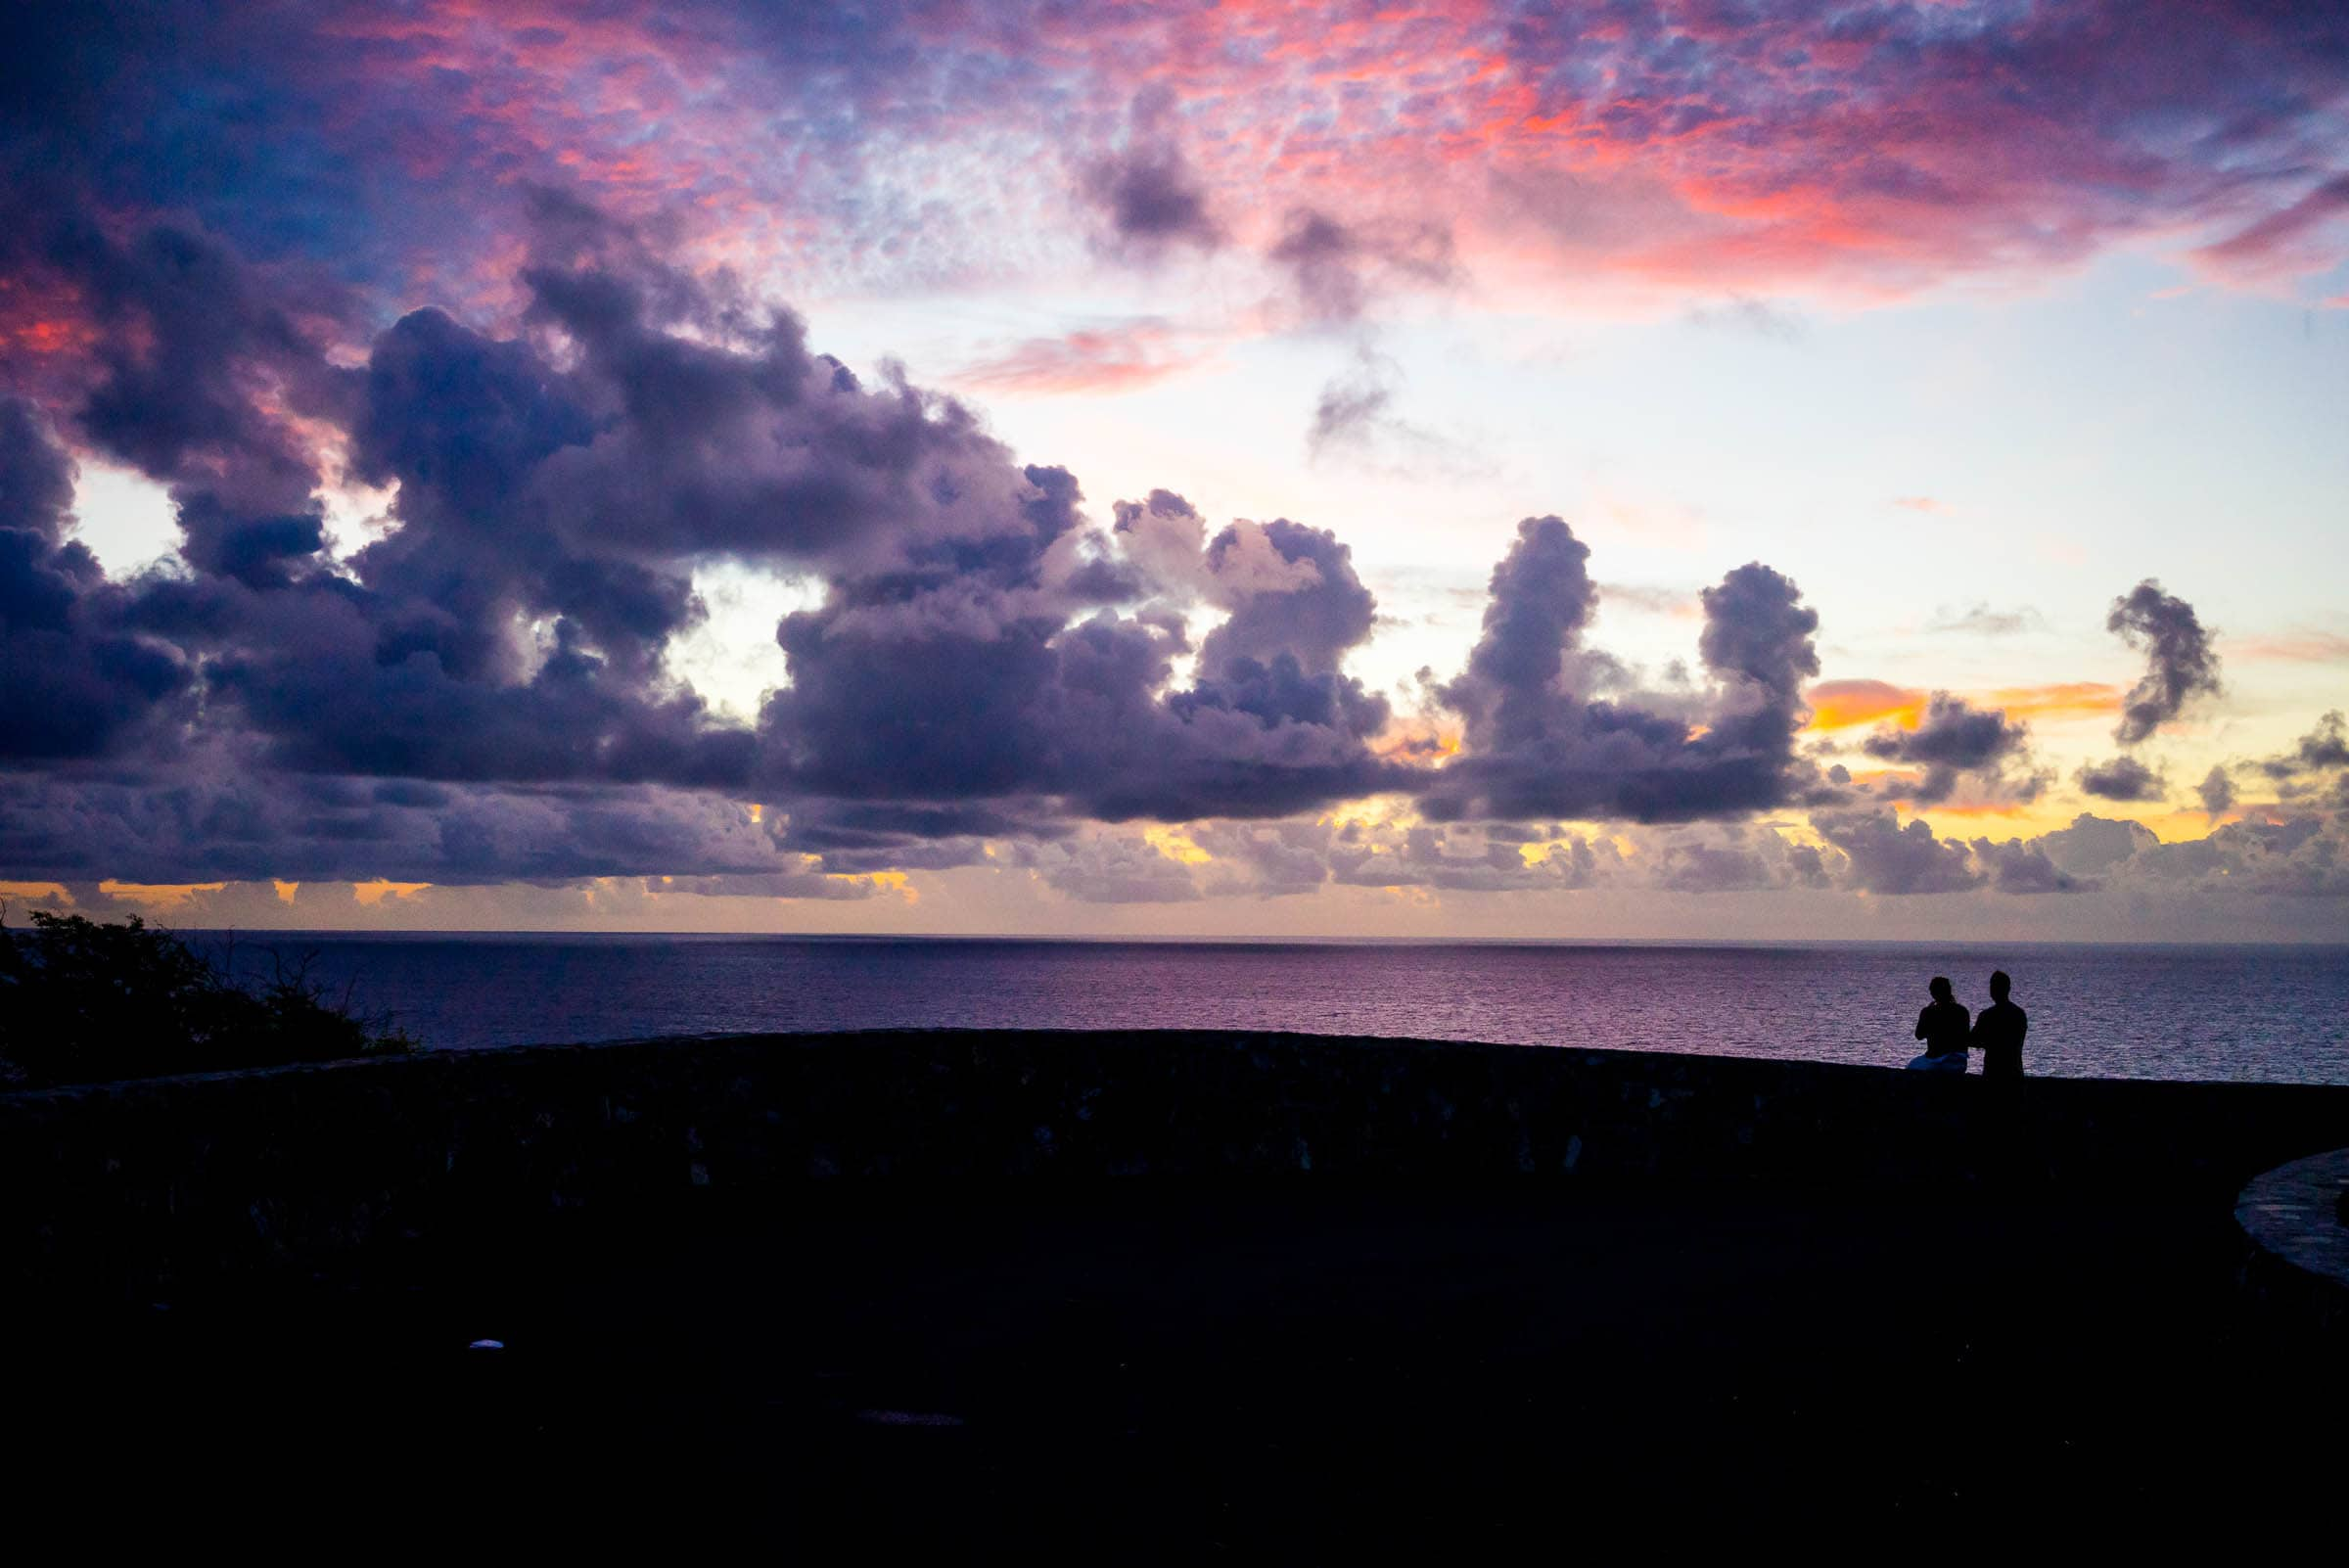 Sunrise at Point Udall, St. Croix by Patrick Bennett